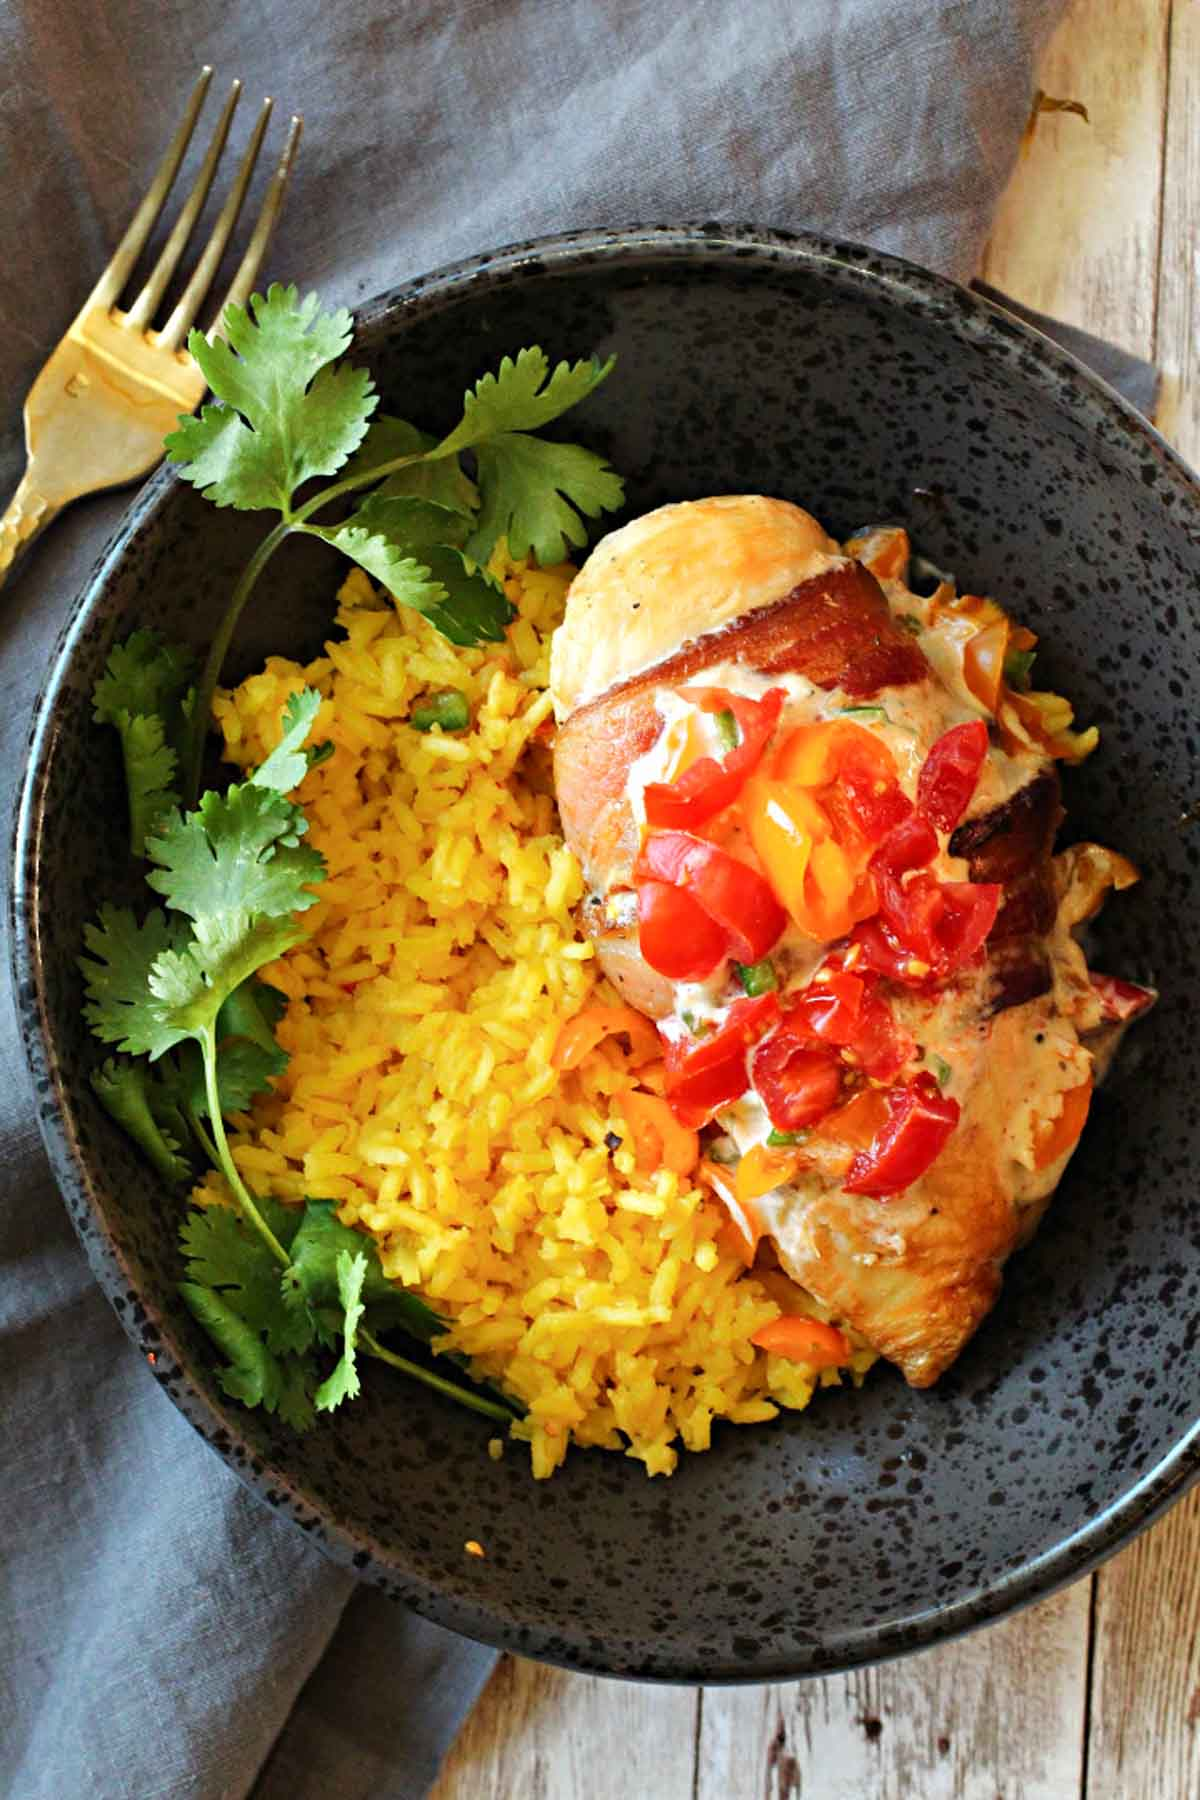 Chicken breast wrapped in bacon topped with a tomato salsa served over yellow mexican rice